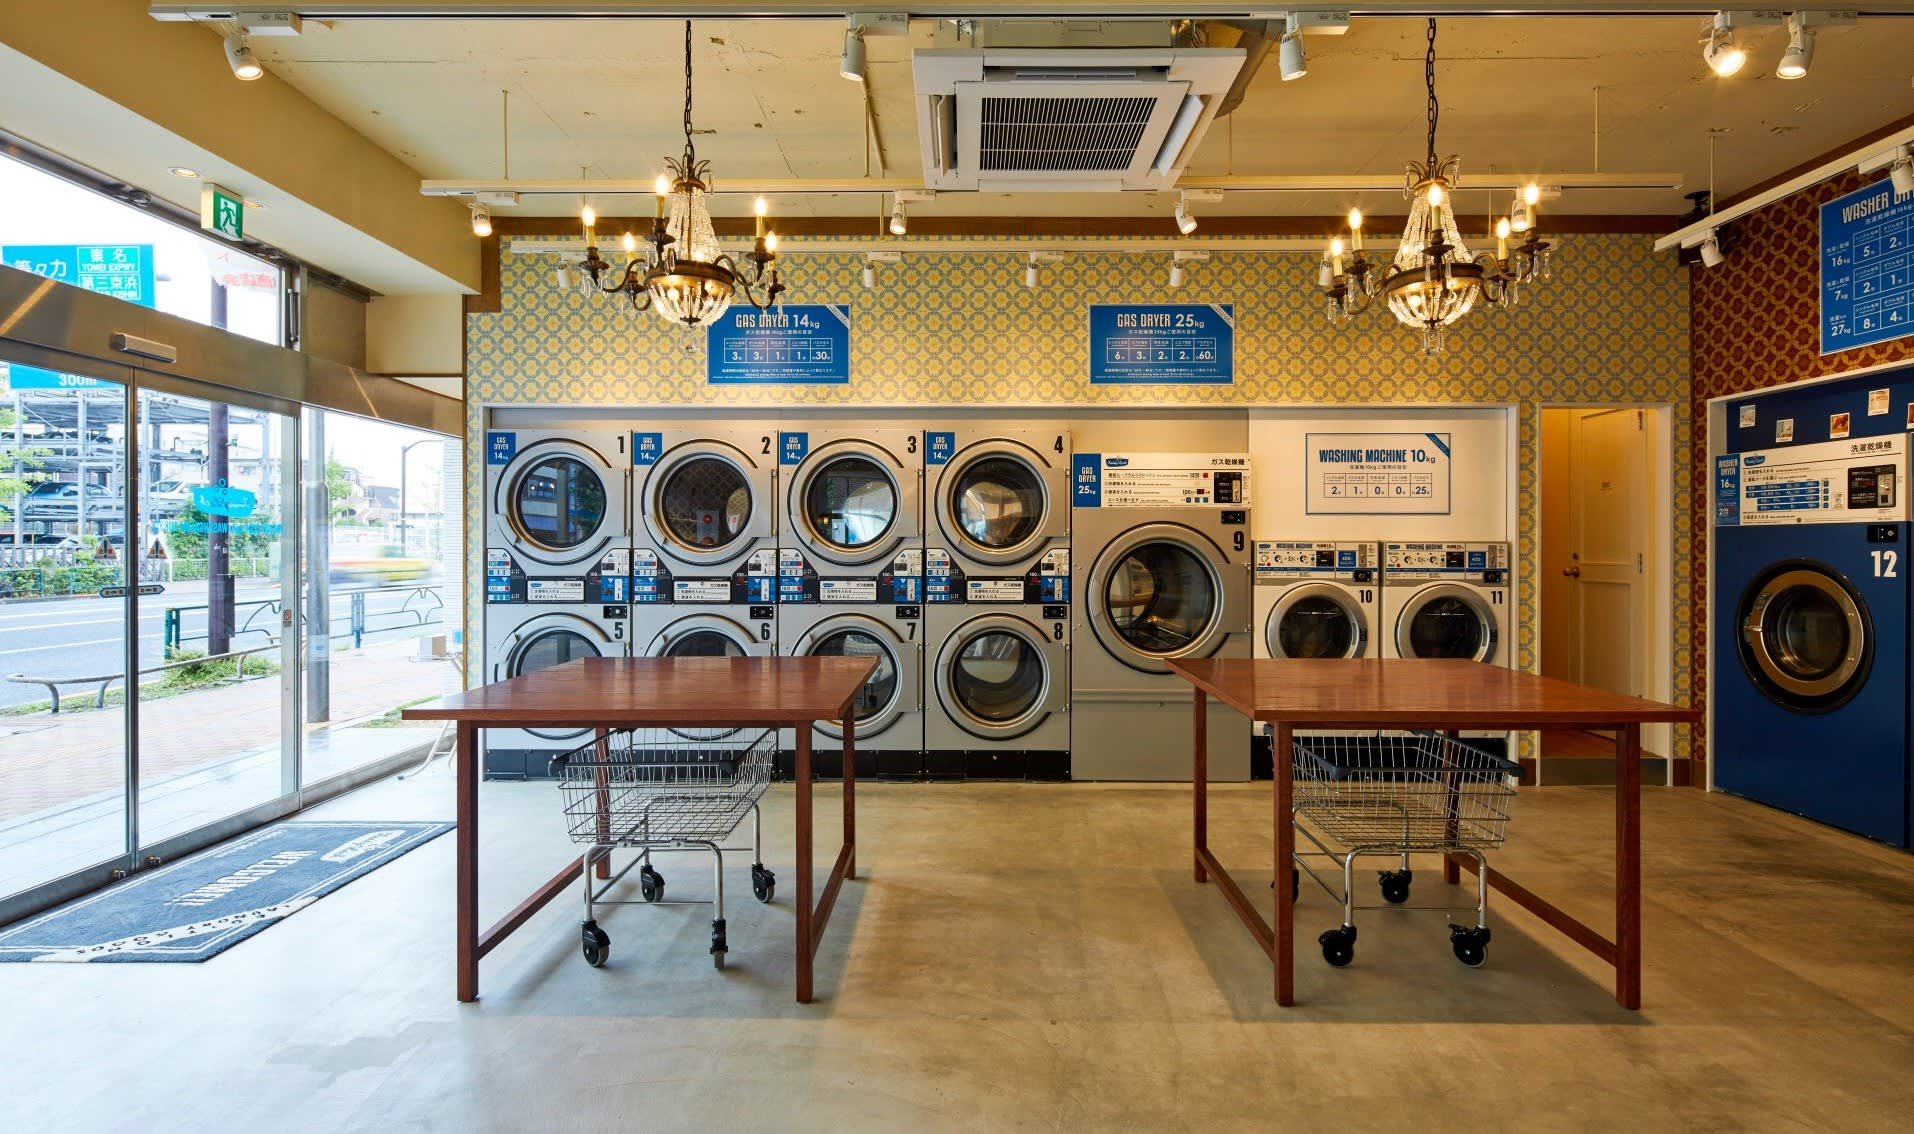 bd8be732930ba German design puts cool spin on Tokyo laundromat. Freddy Leck turns washing  clothes ...